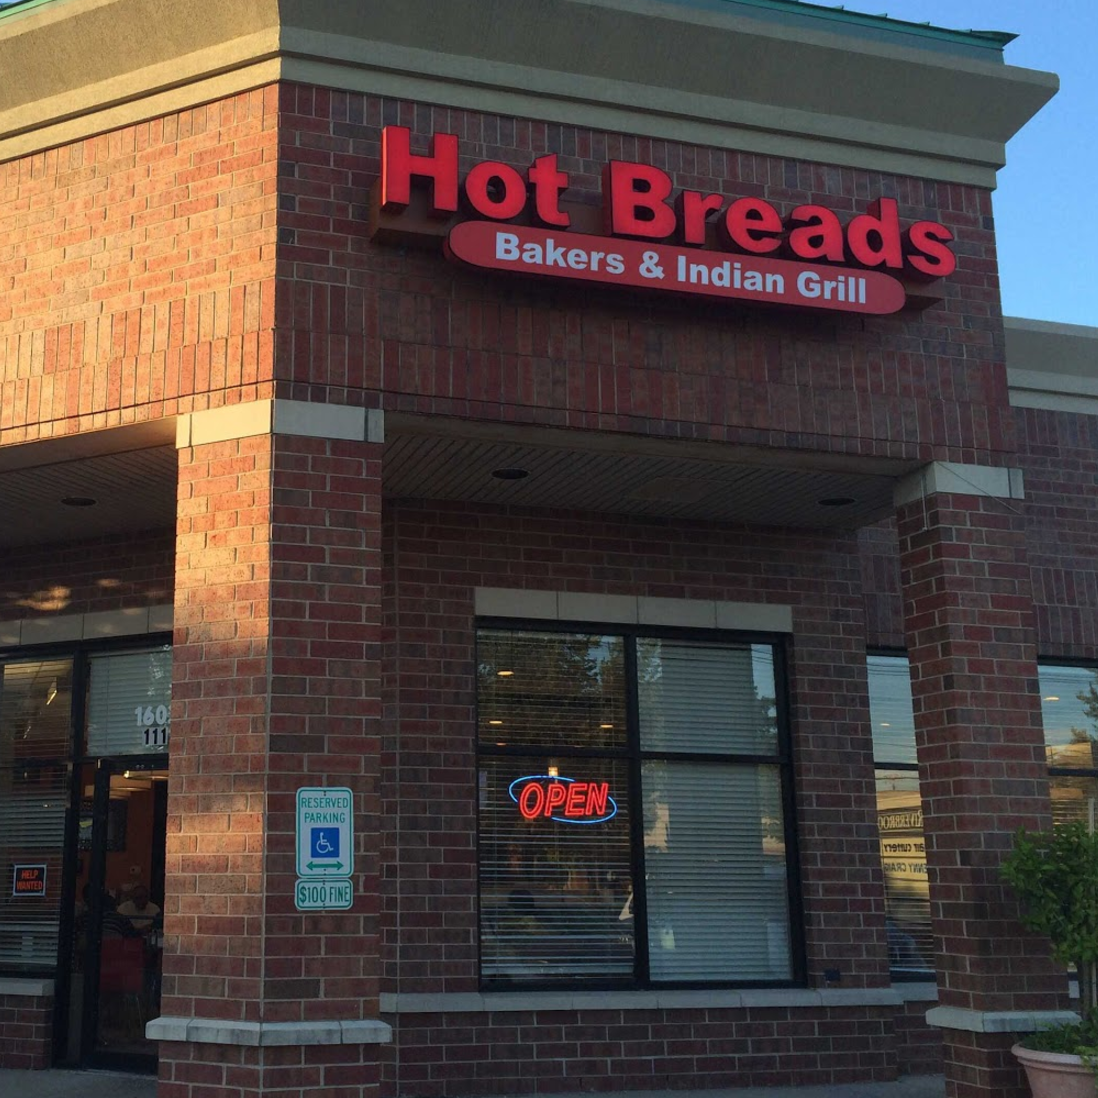 Hot Breads